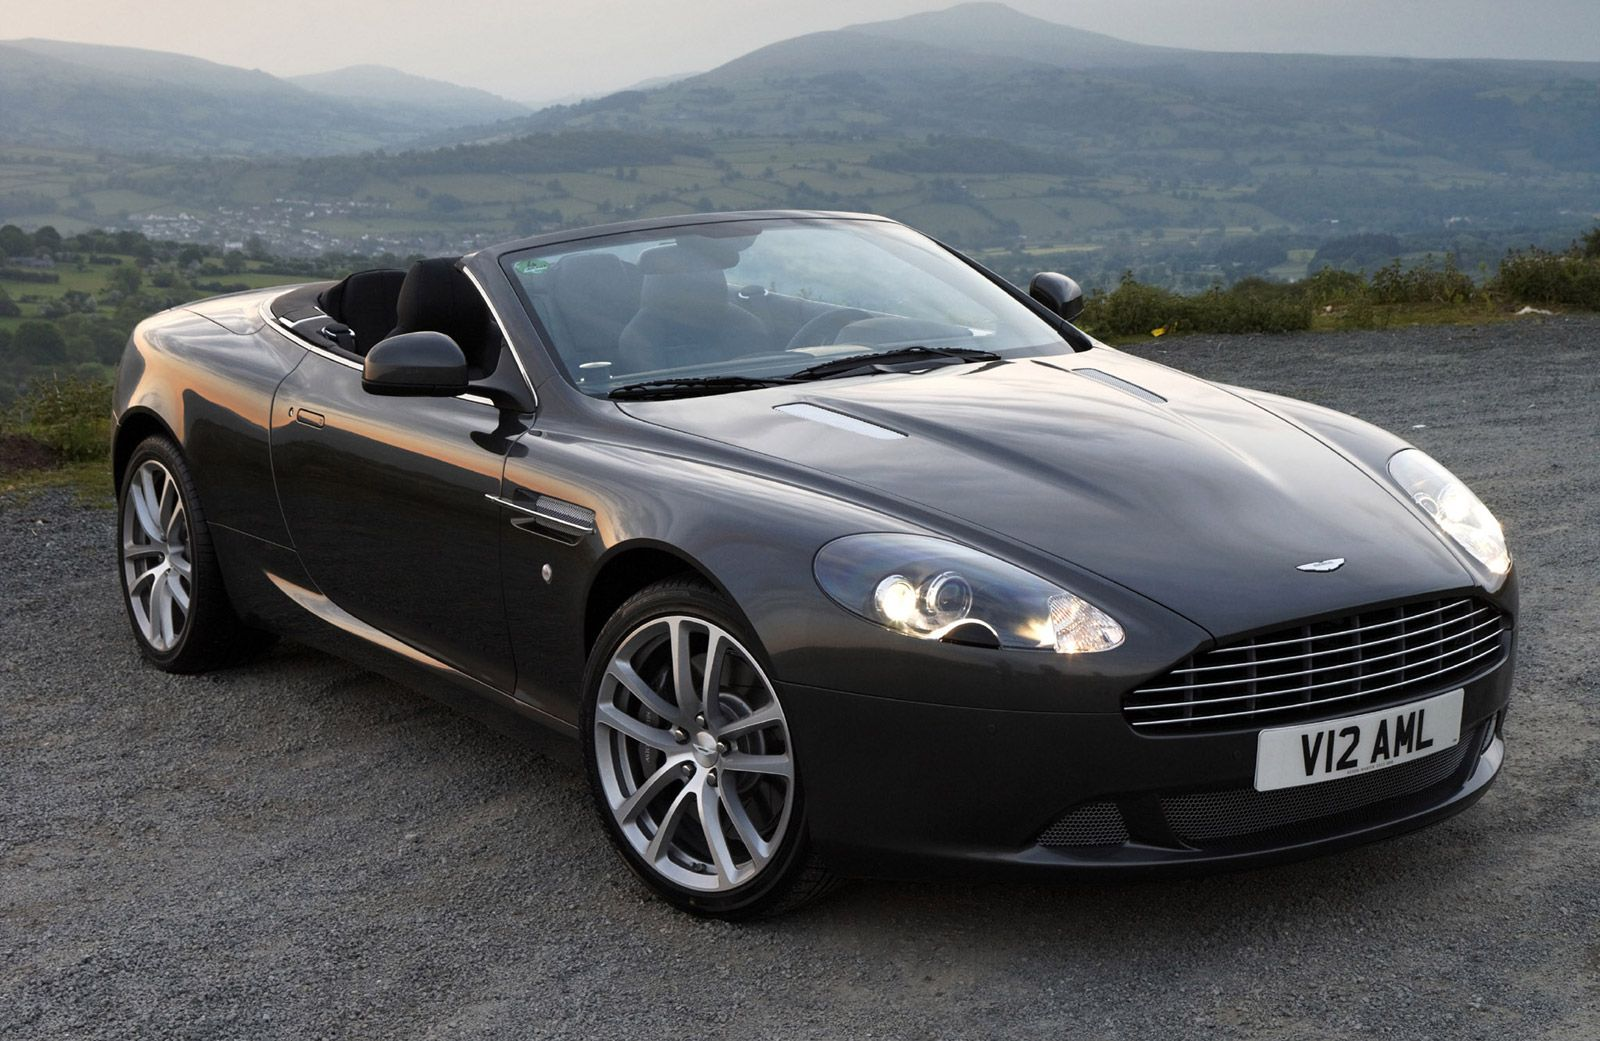 Dog Chews Owner's Aston Martin DB9, Gets Given Away